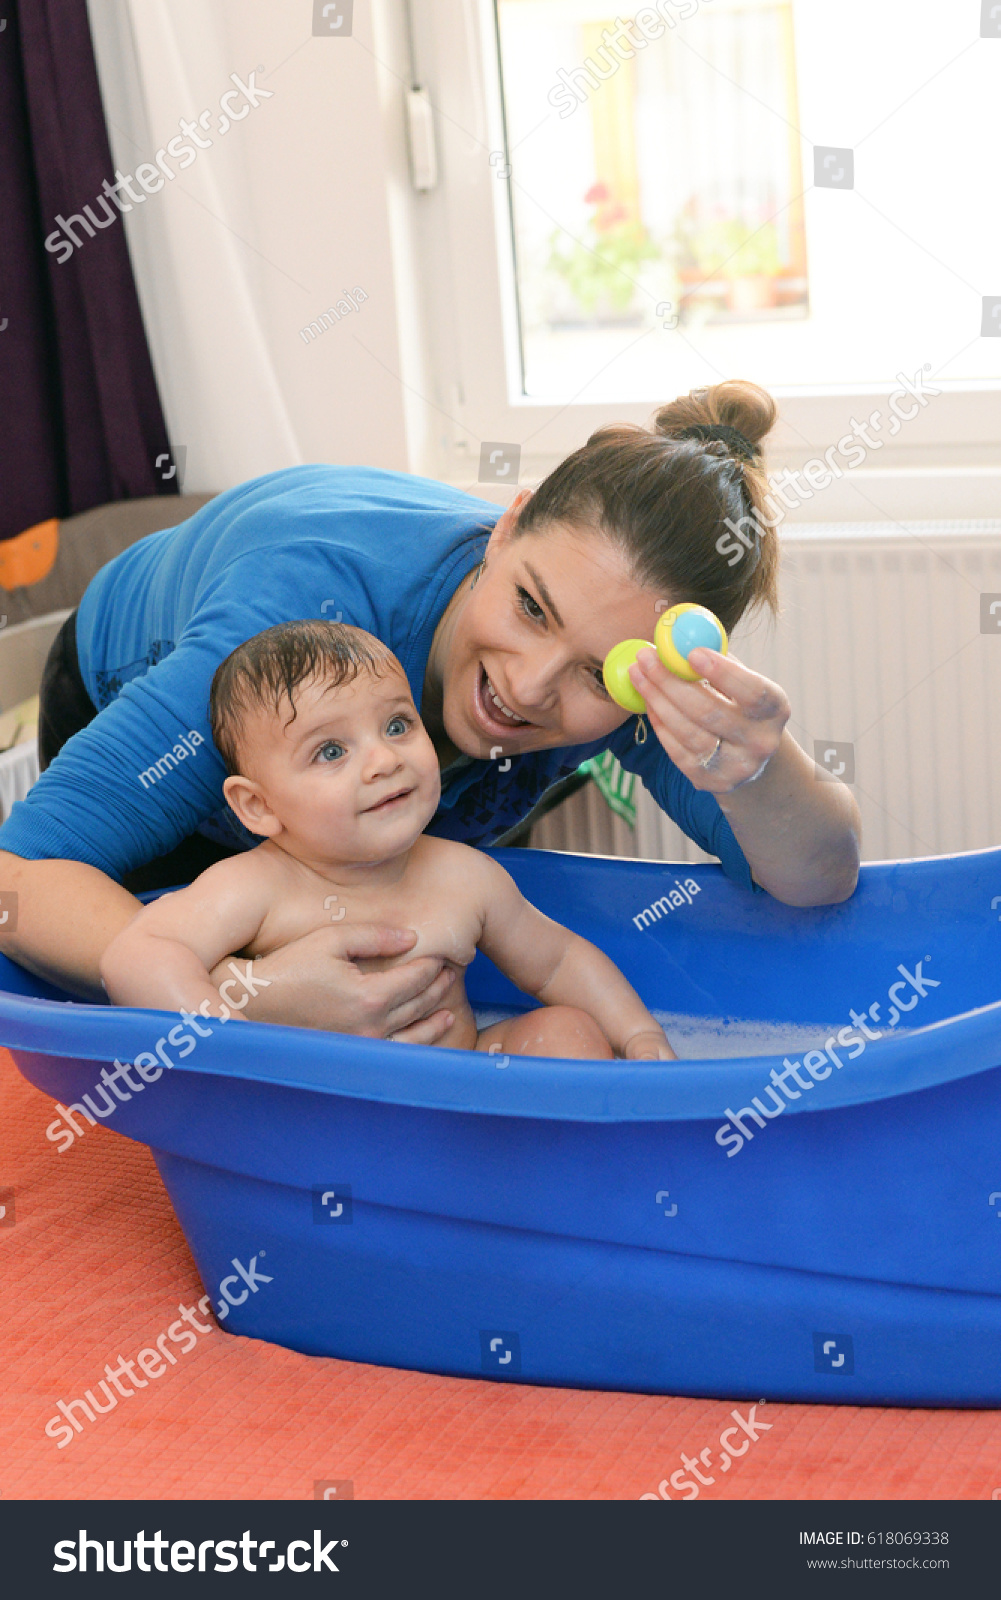 Mother Bathing His Happy Smiling Baby Stock Photo 618069338 ...